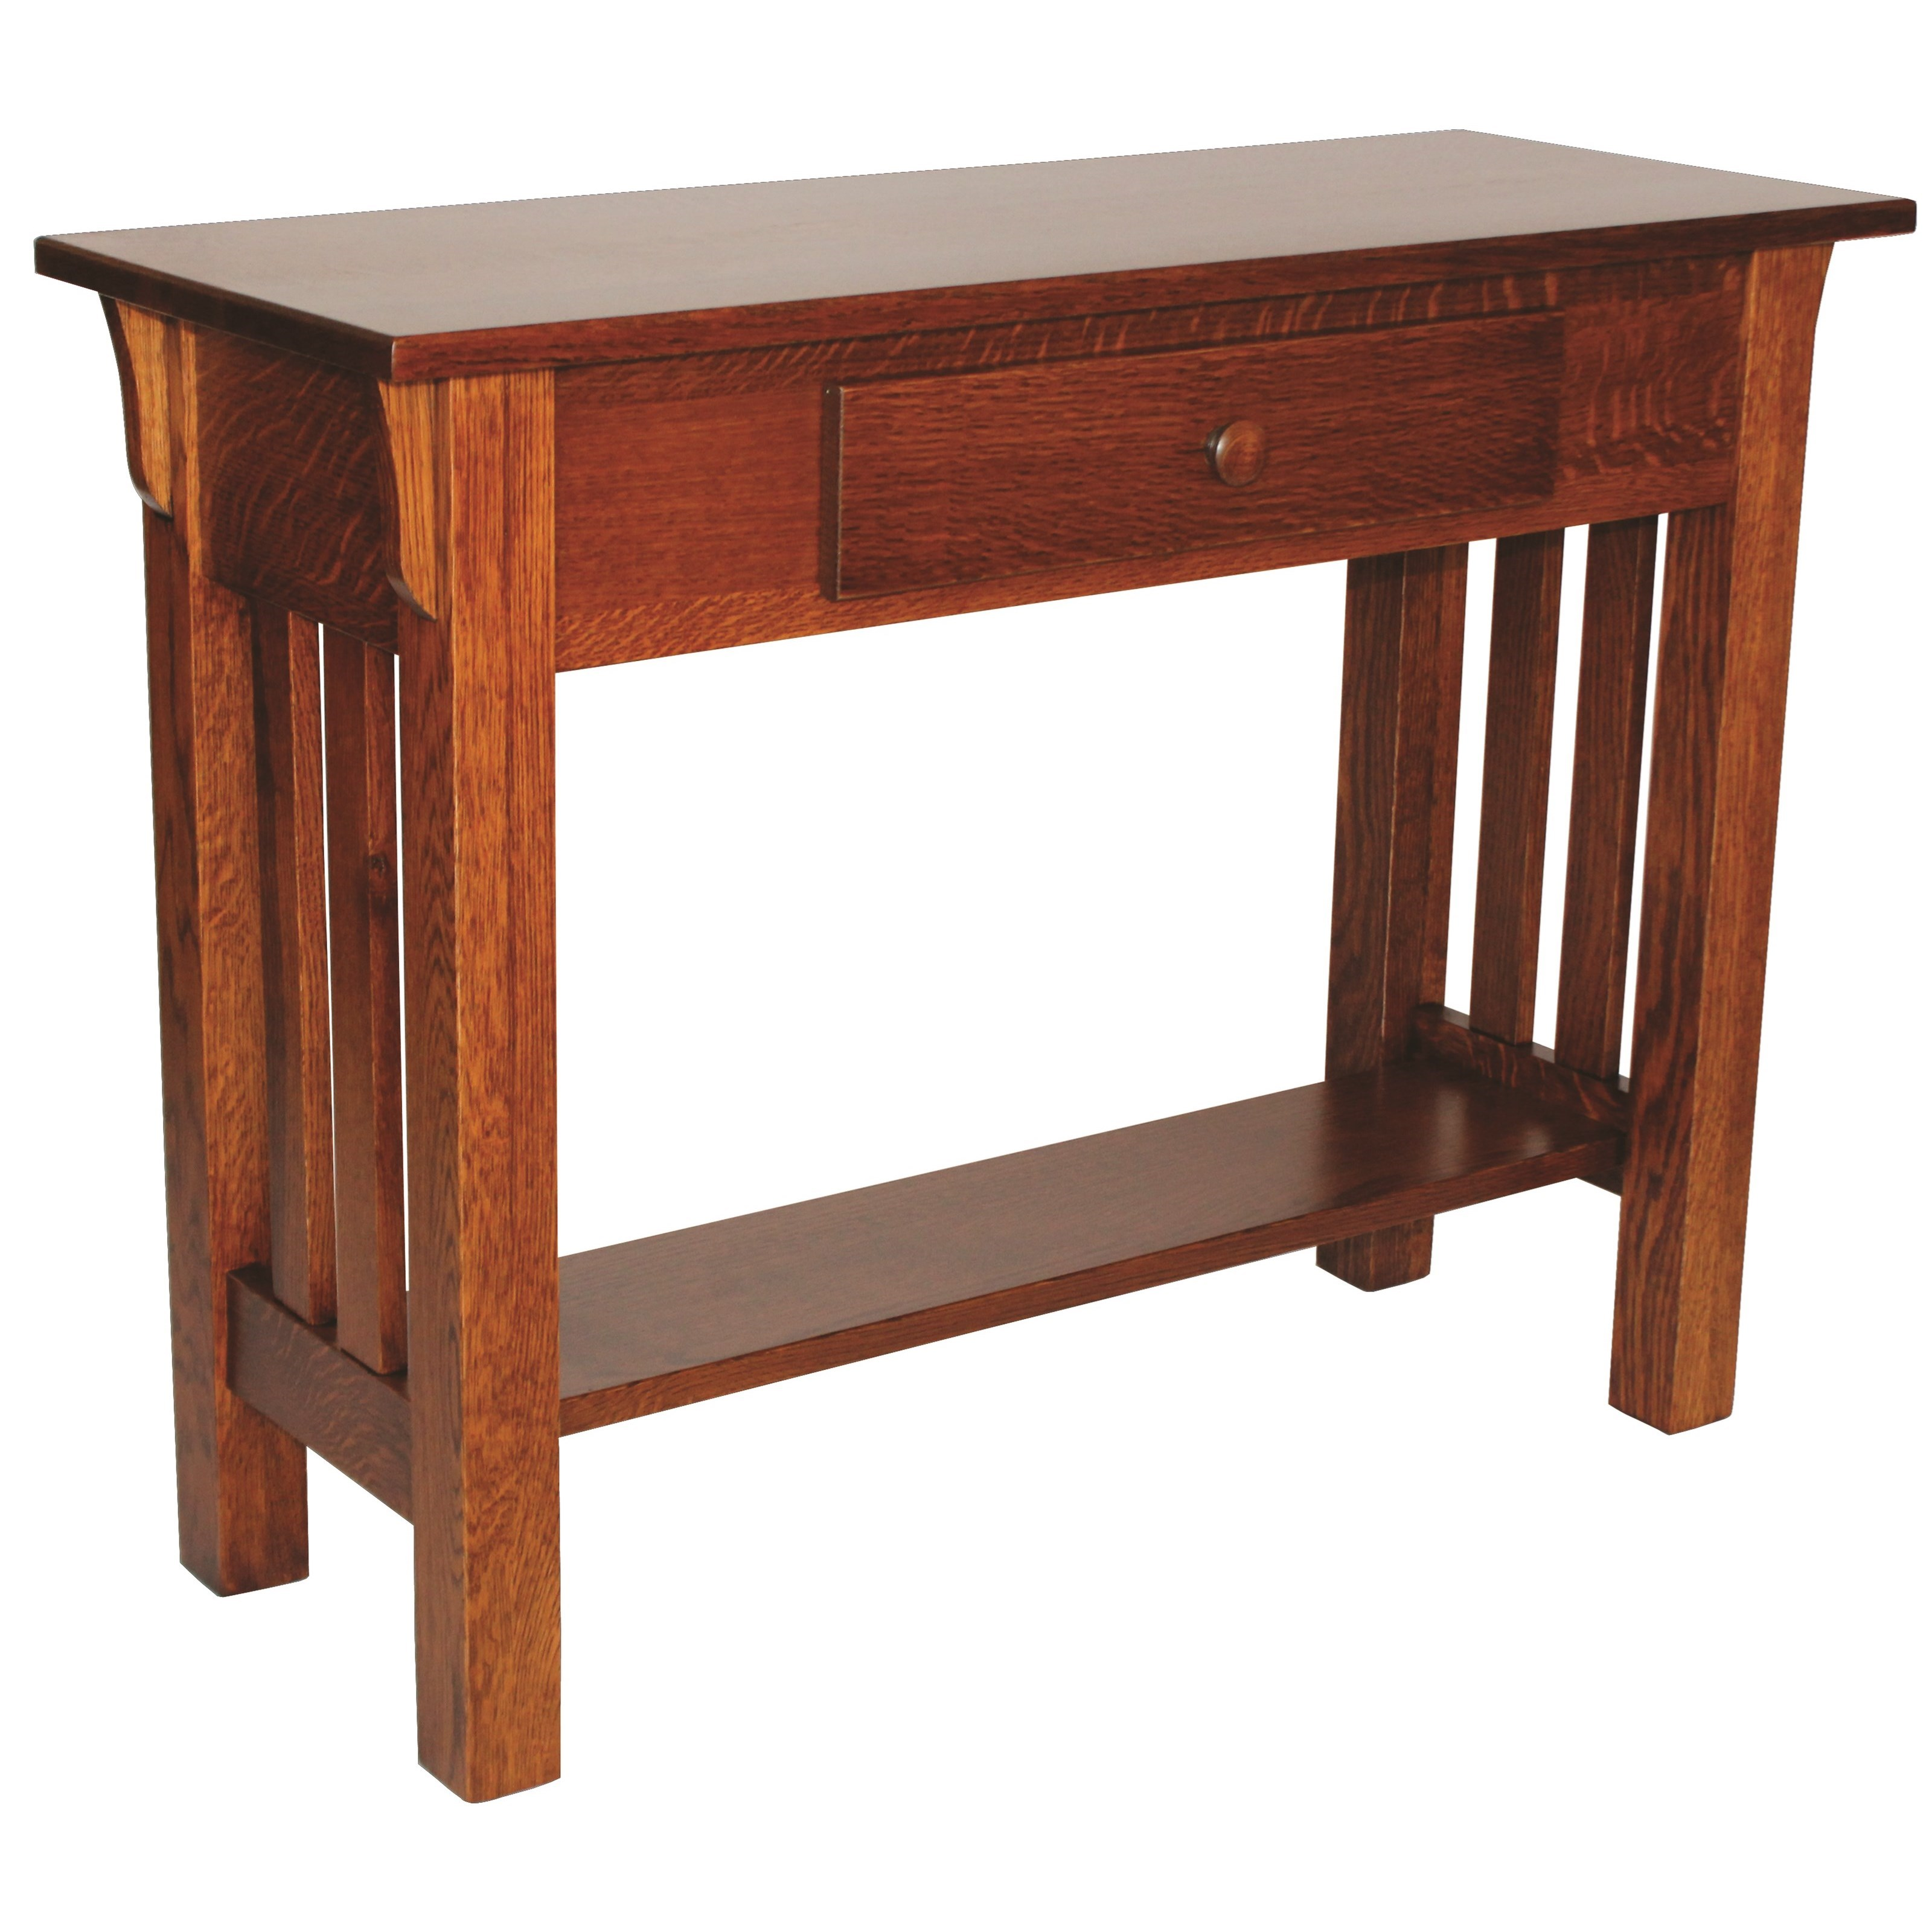 Wide Slat Mission Sofa Table by Ashery Woodworking at Saugerties Furniture Mart